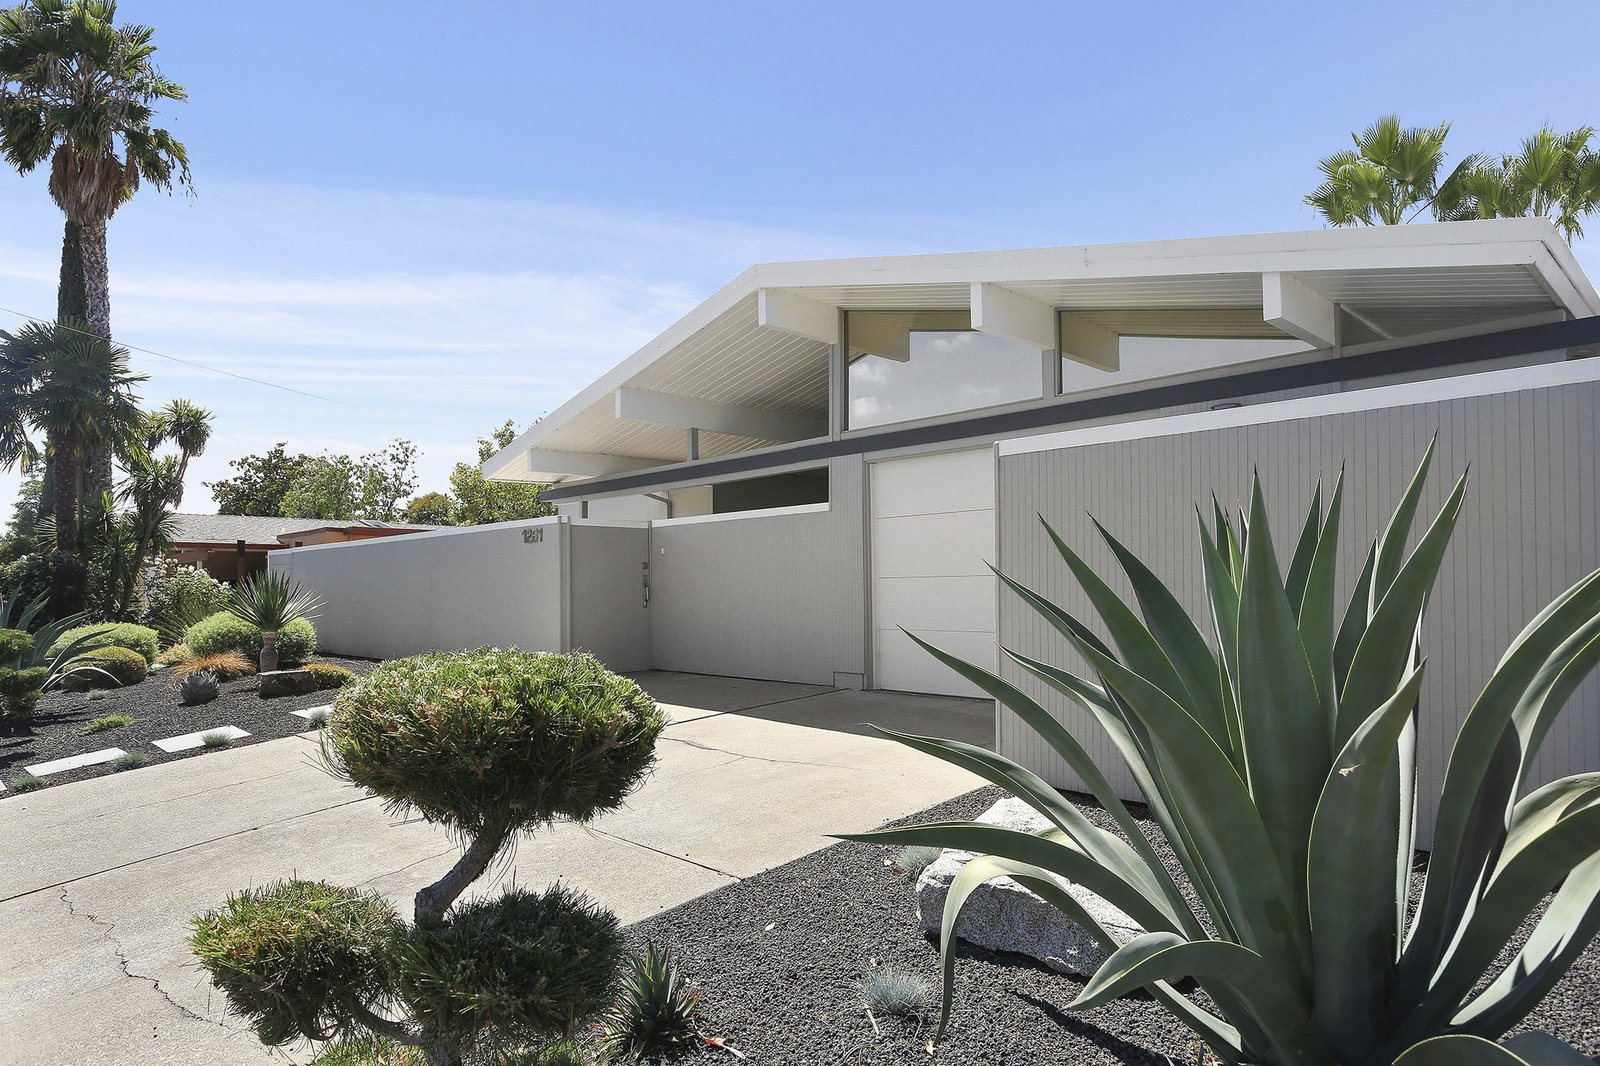 Exterior, Gable RoofLine, House Building Type, Glass Siding Material, Mid-Century Building Type, Flat RoofLine, and Wood Siding Material The meticulously landscaped front yard is low maintenance and features drought tolerant plants and a sprinkler system.  Photo 2 of 13 in A Handsome East Bay Eichler Lists For $875K